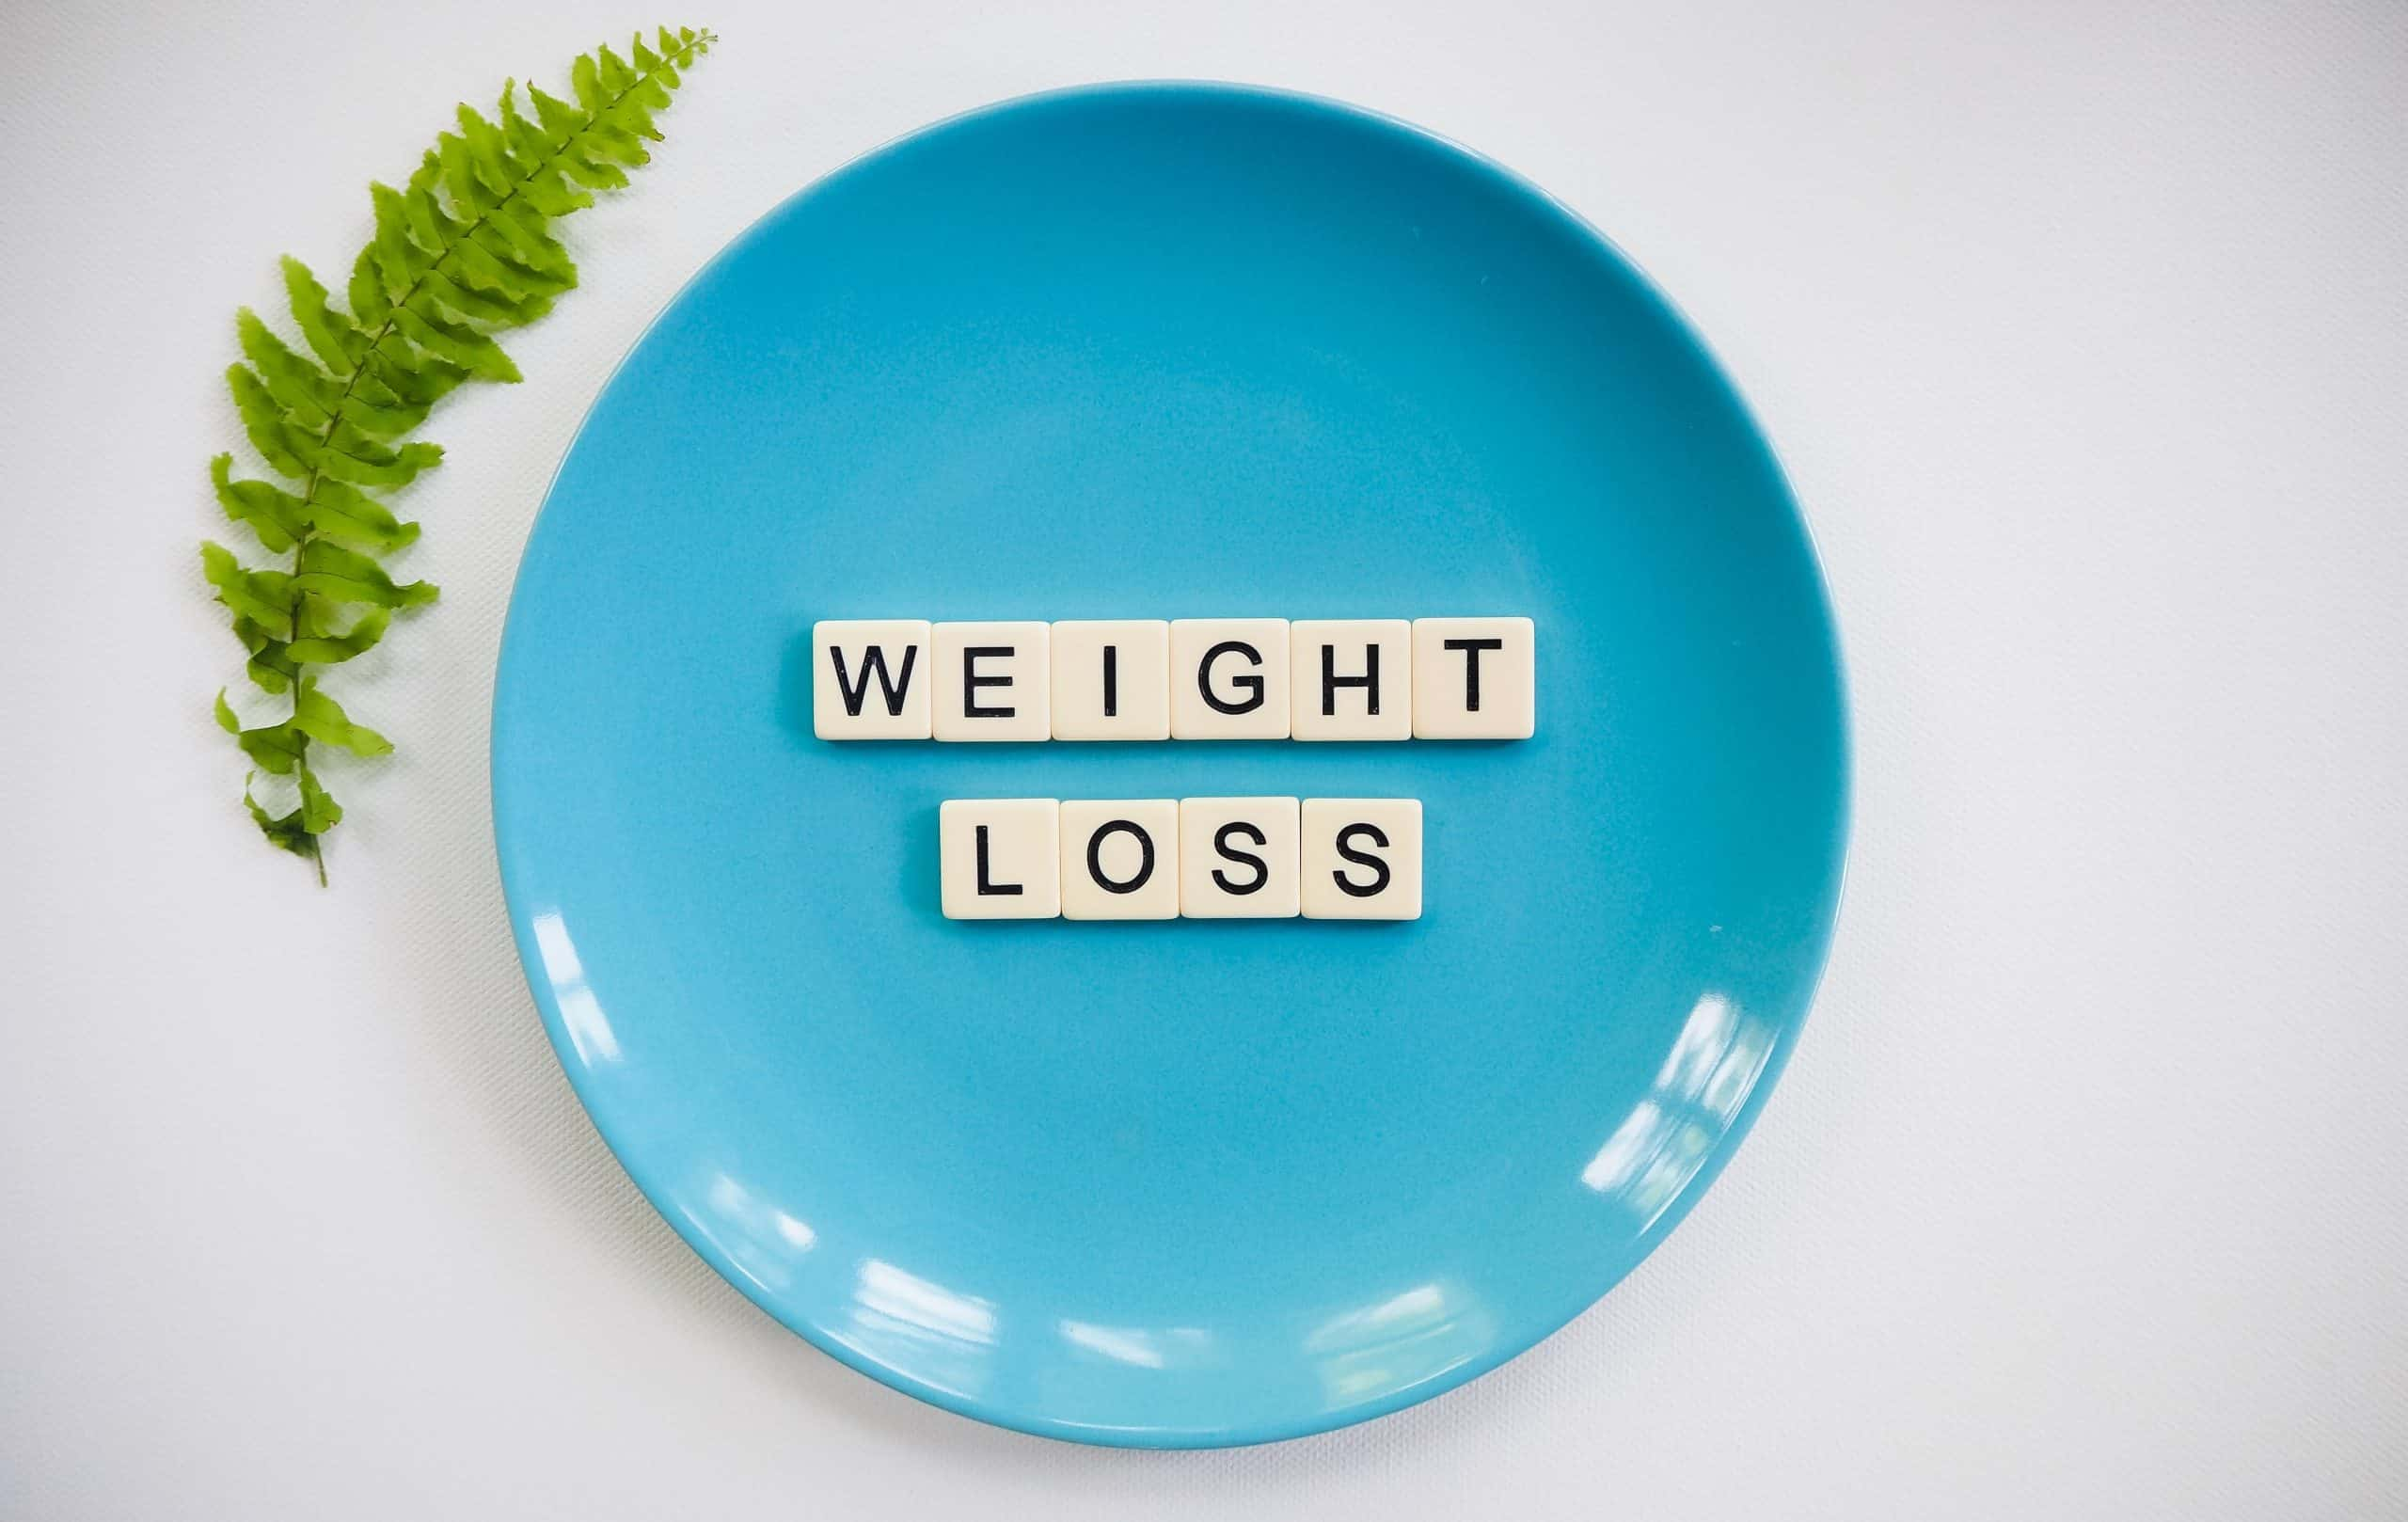 blue plate with white and black letters spelling Weight Loss.